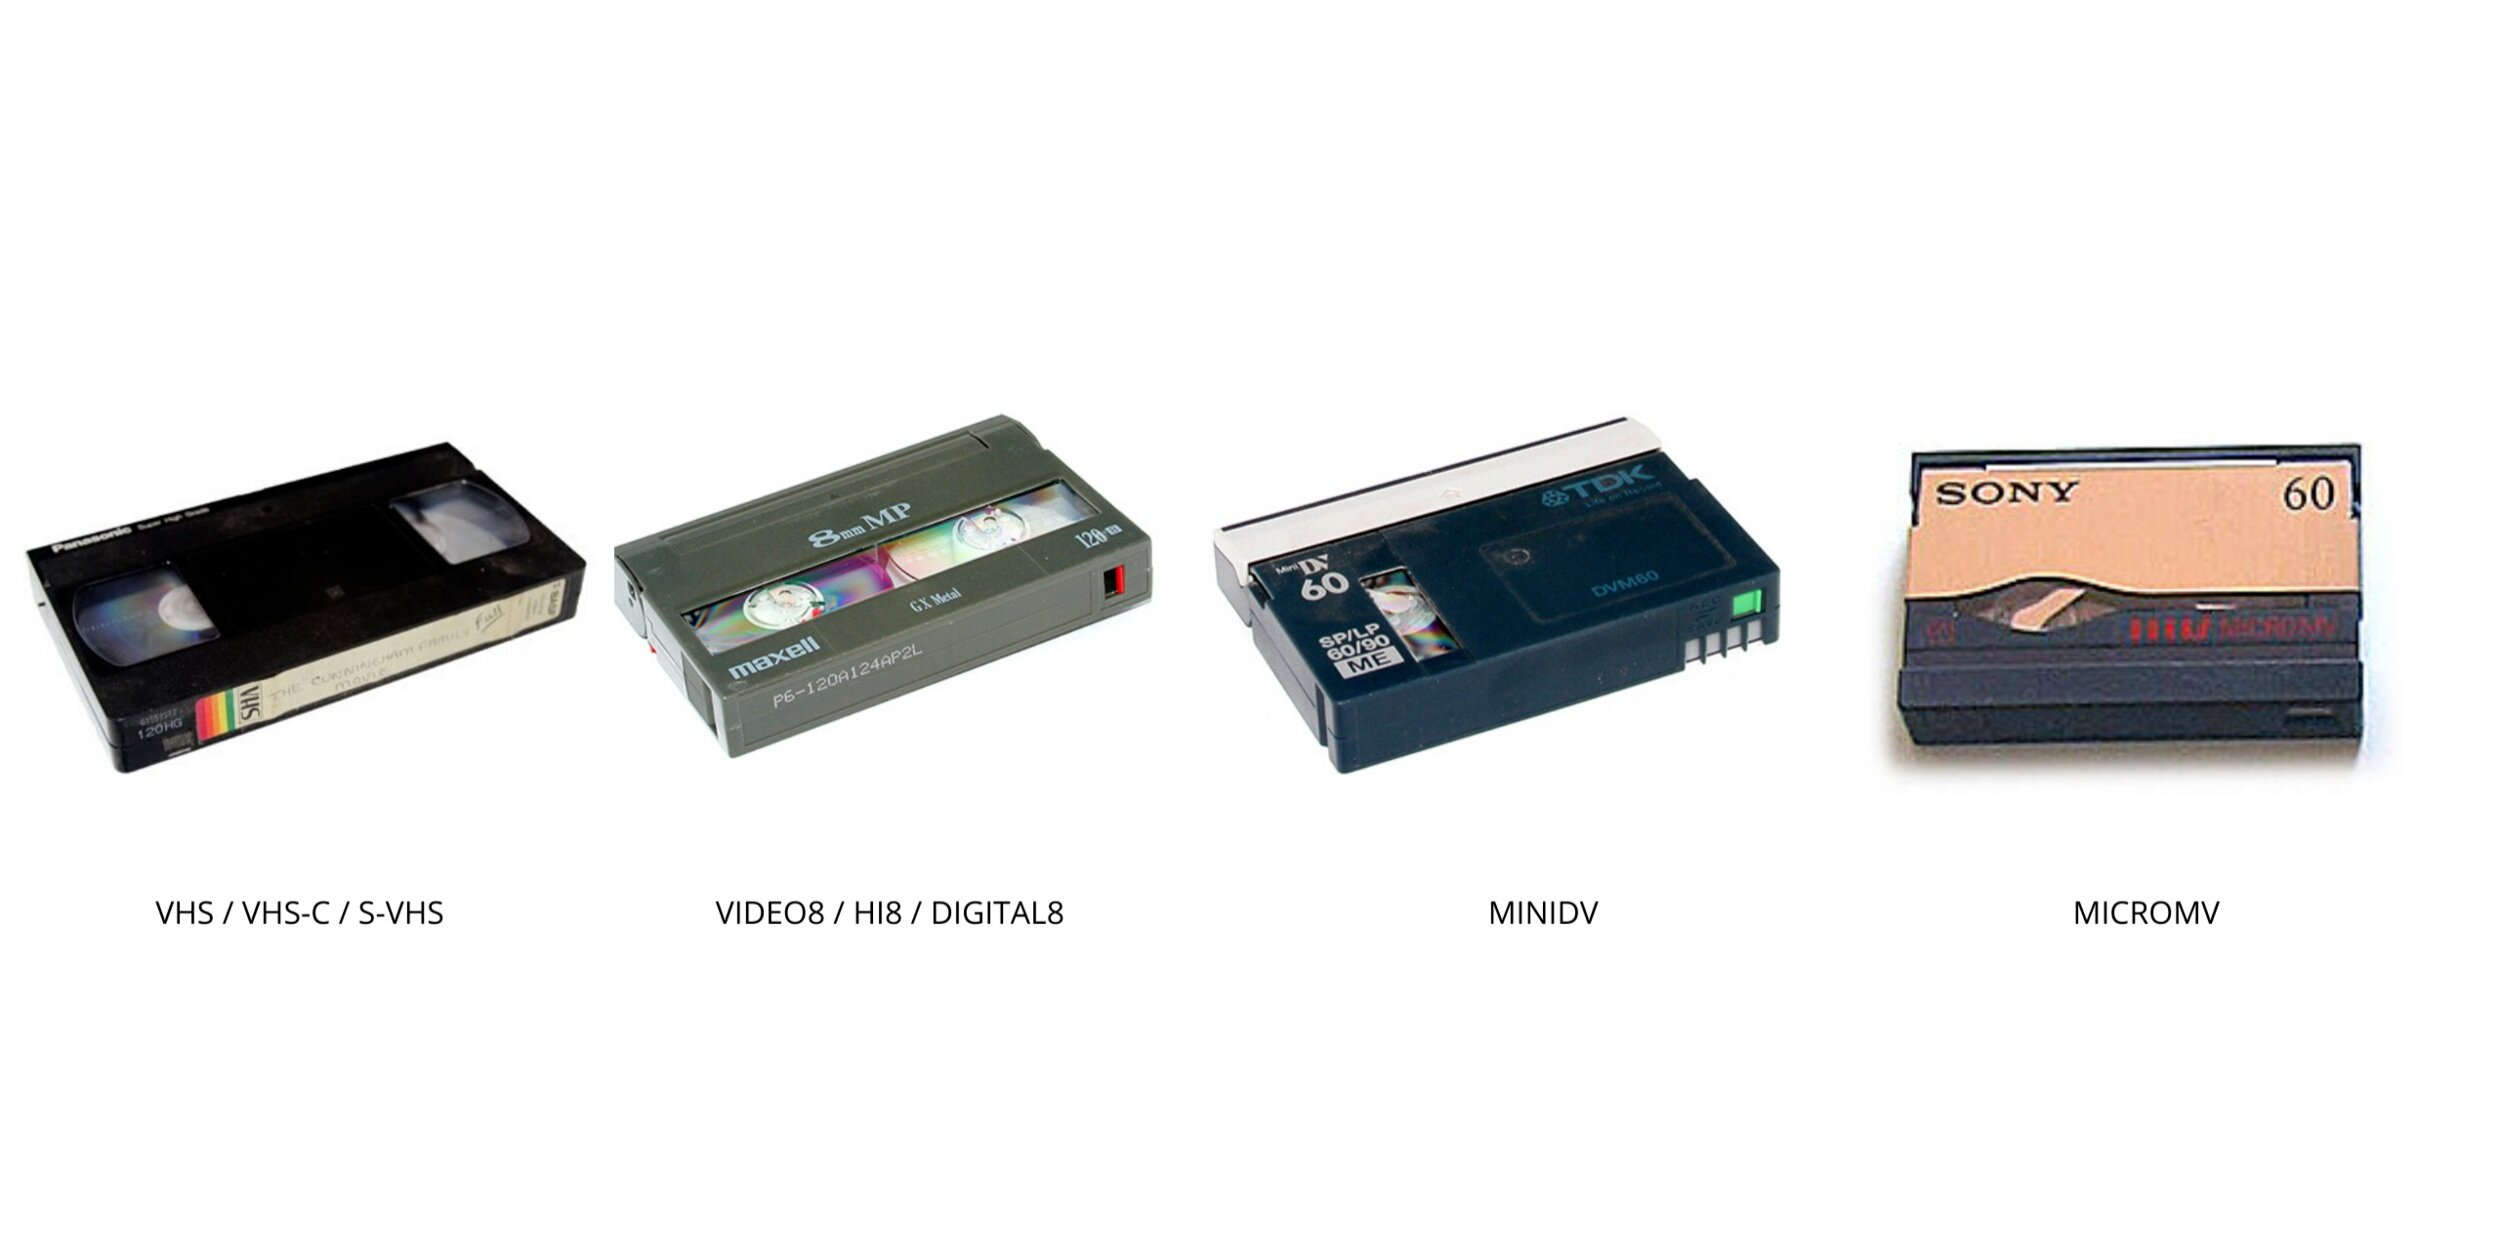 VHS, VHS-C, S-VHS - VHS, along with Betamax, is the original and most popular consumer video tape format.